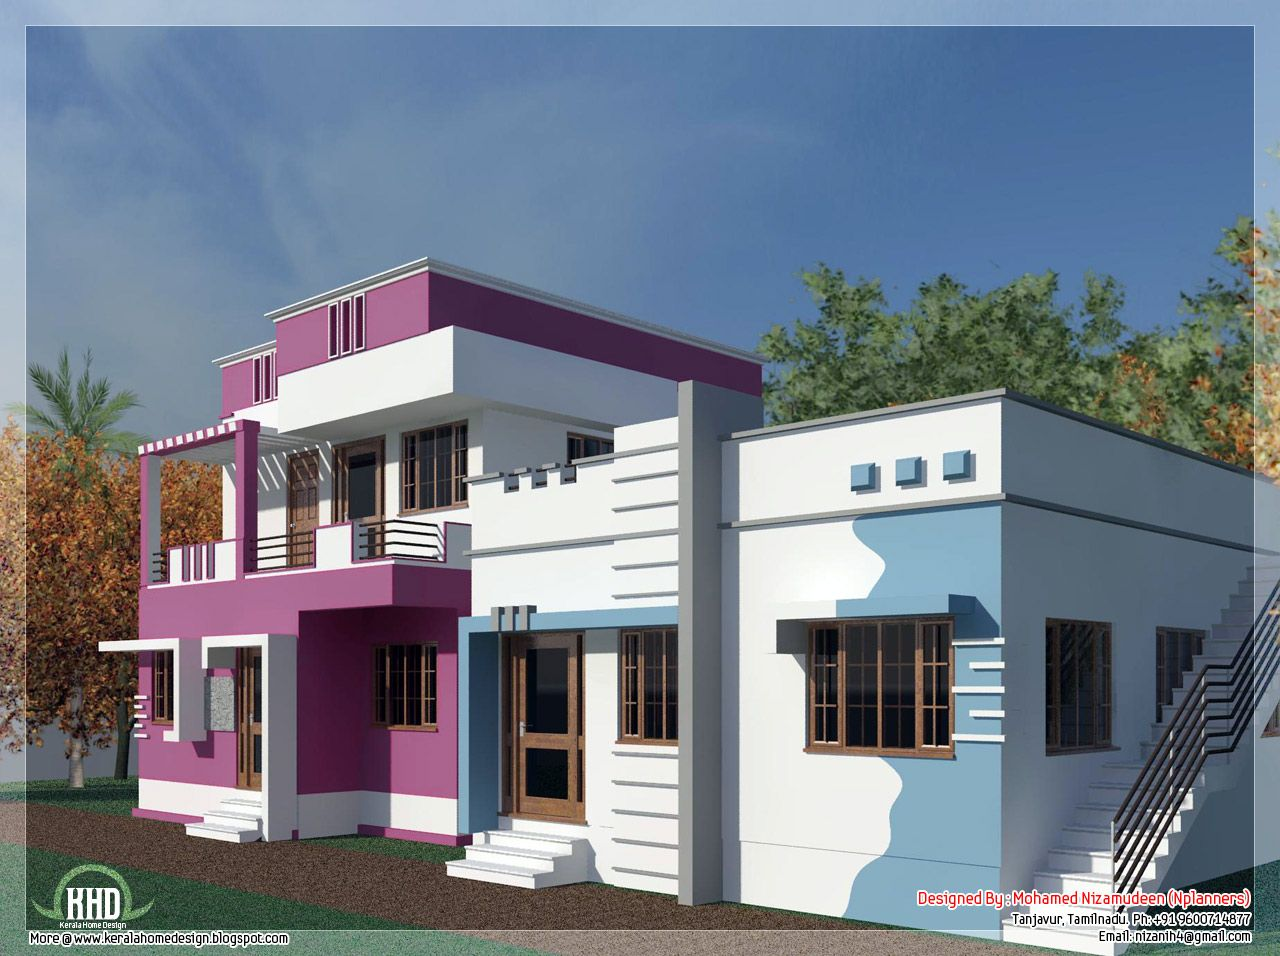 Tamilnadu Model Home Design In Sq Feet Kerala Home Design